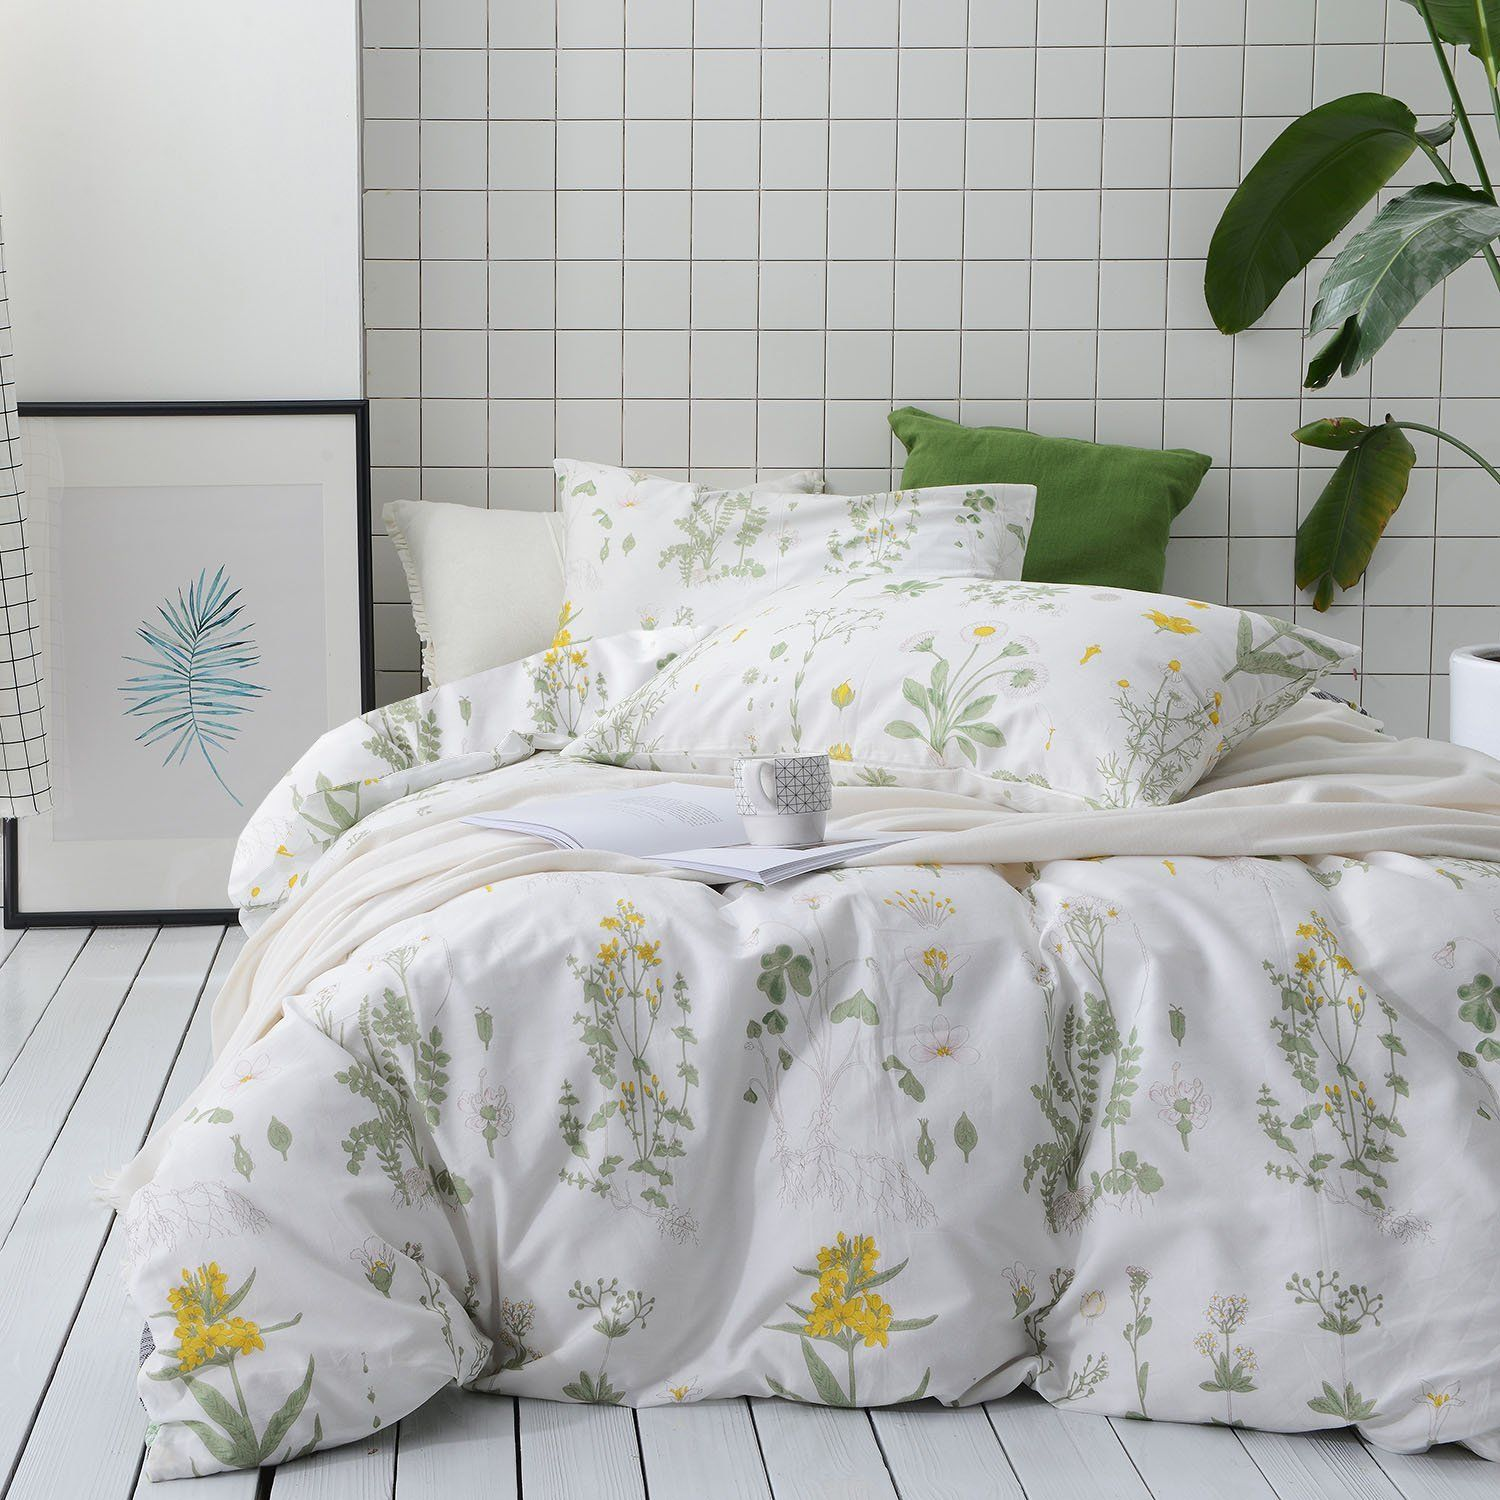 Amazon Com Botanical Duvet Cover Set 100 Cotton Bedding Yellow Flowers And Green Leaves Floral Garden P Ikea Duvet Cover Duvet Cover Sets Best Duvet Covers